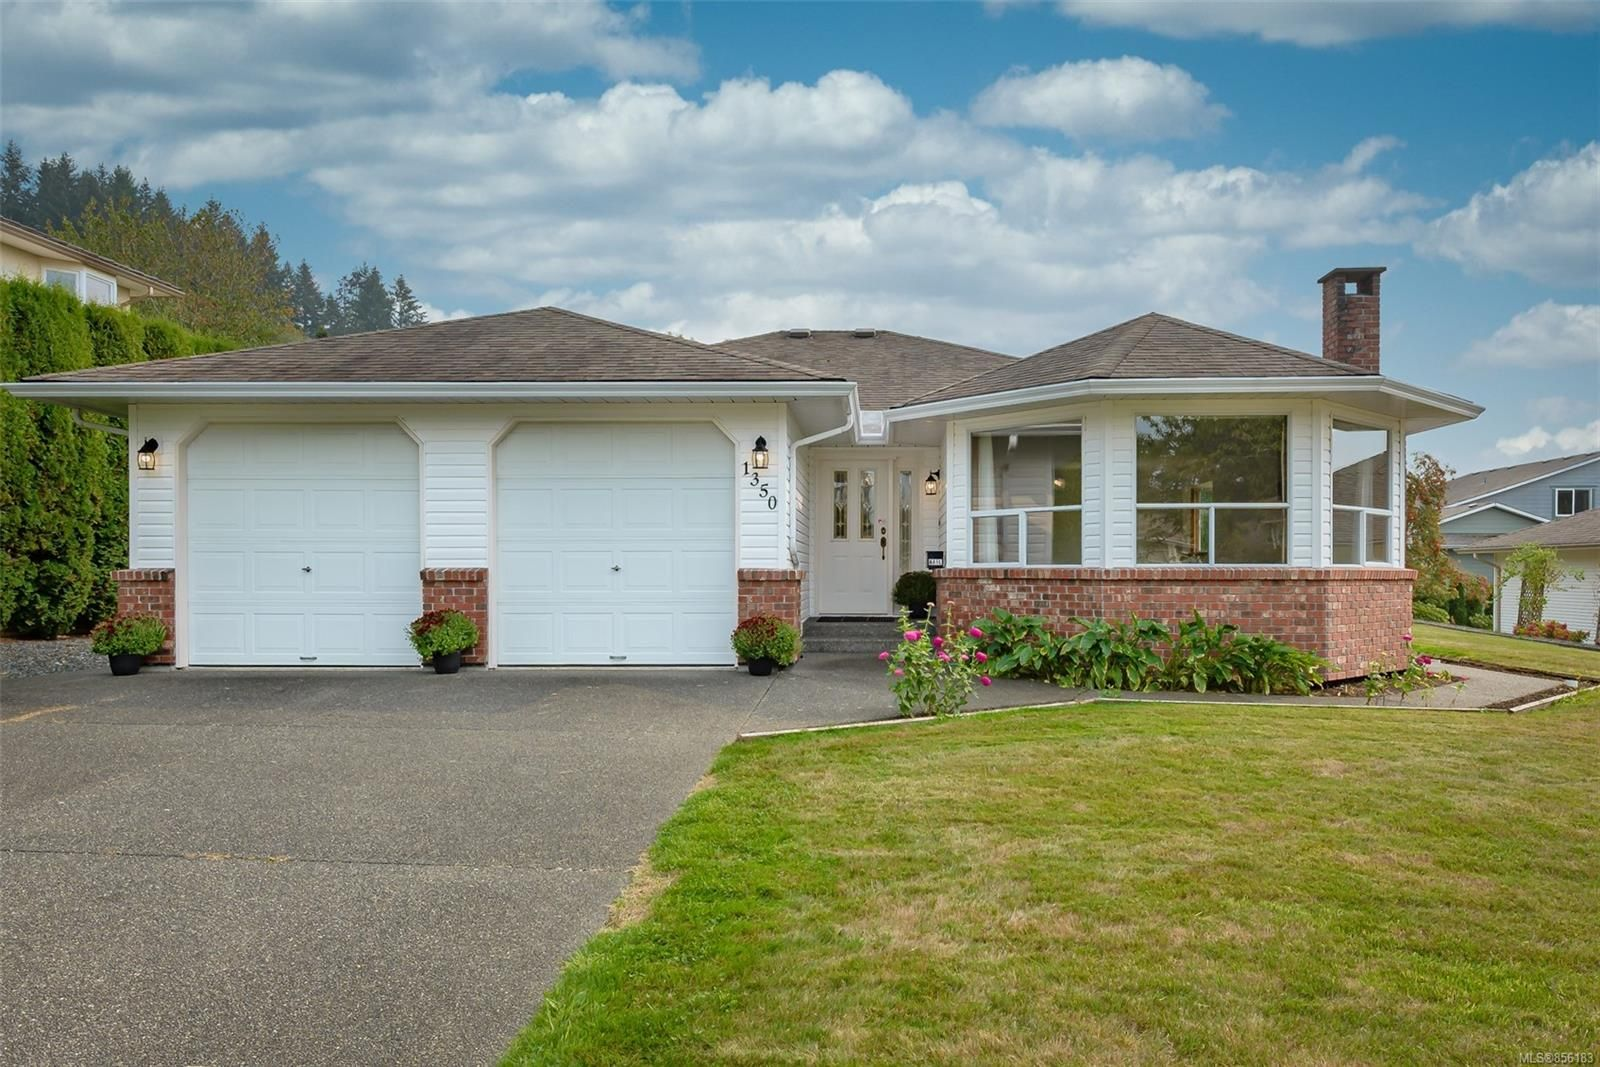 Main Photo: 1350 Pheasant Pl in : CV Courtenay East House for sale (Comox Valley)  : MLS®# 856183